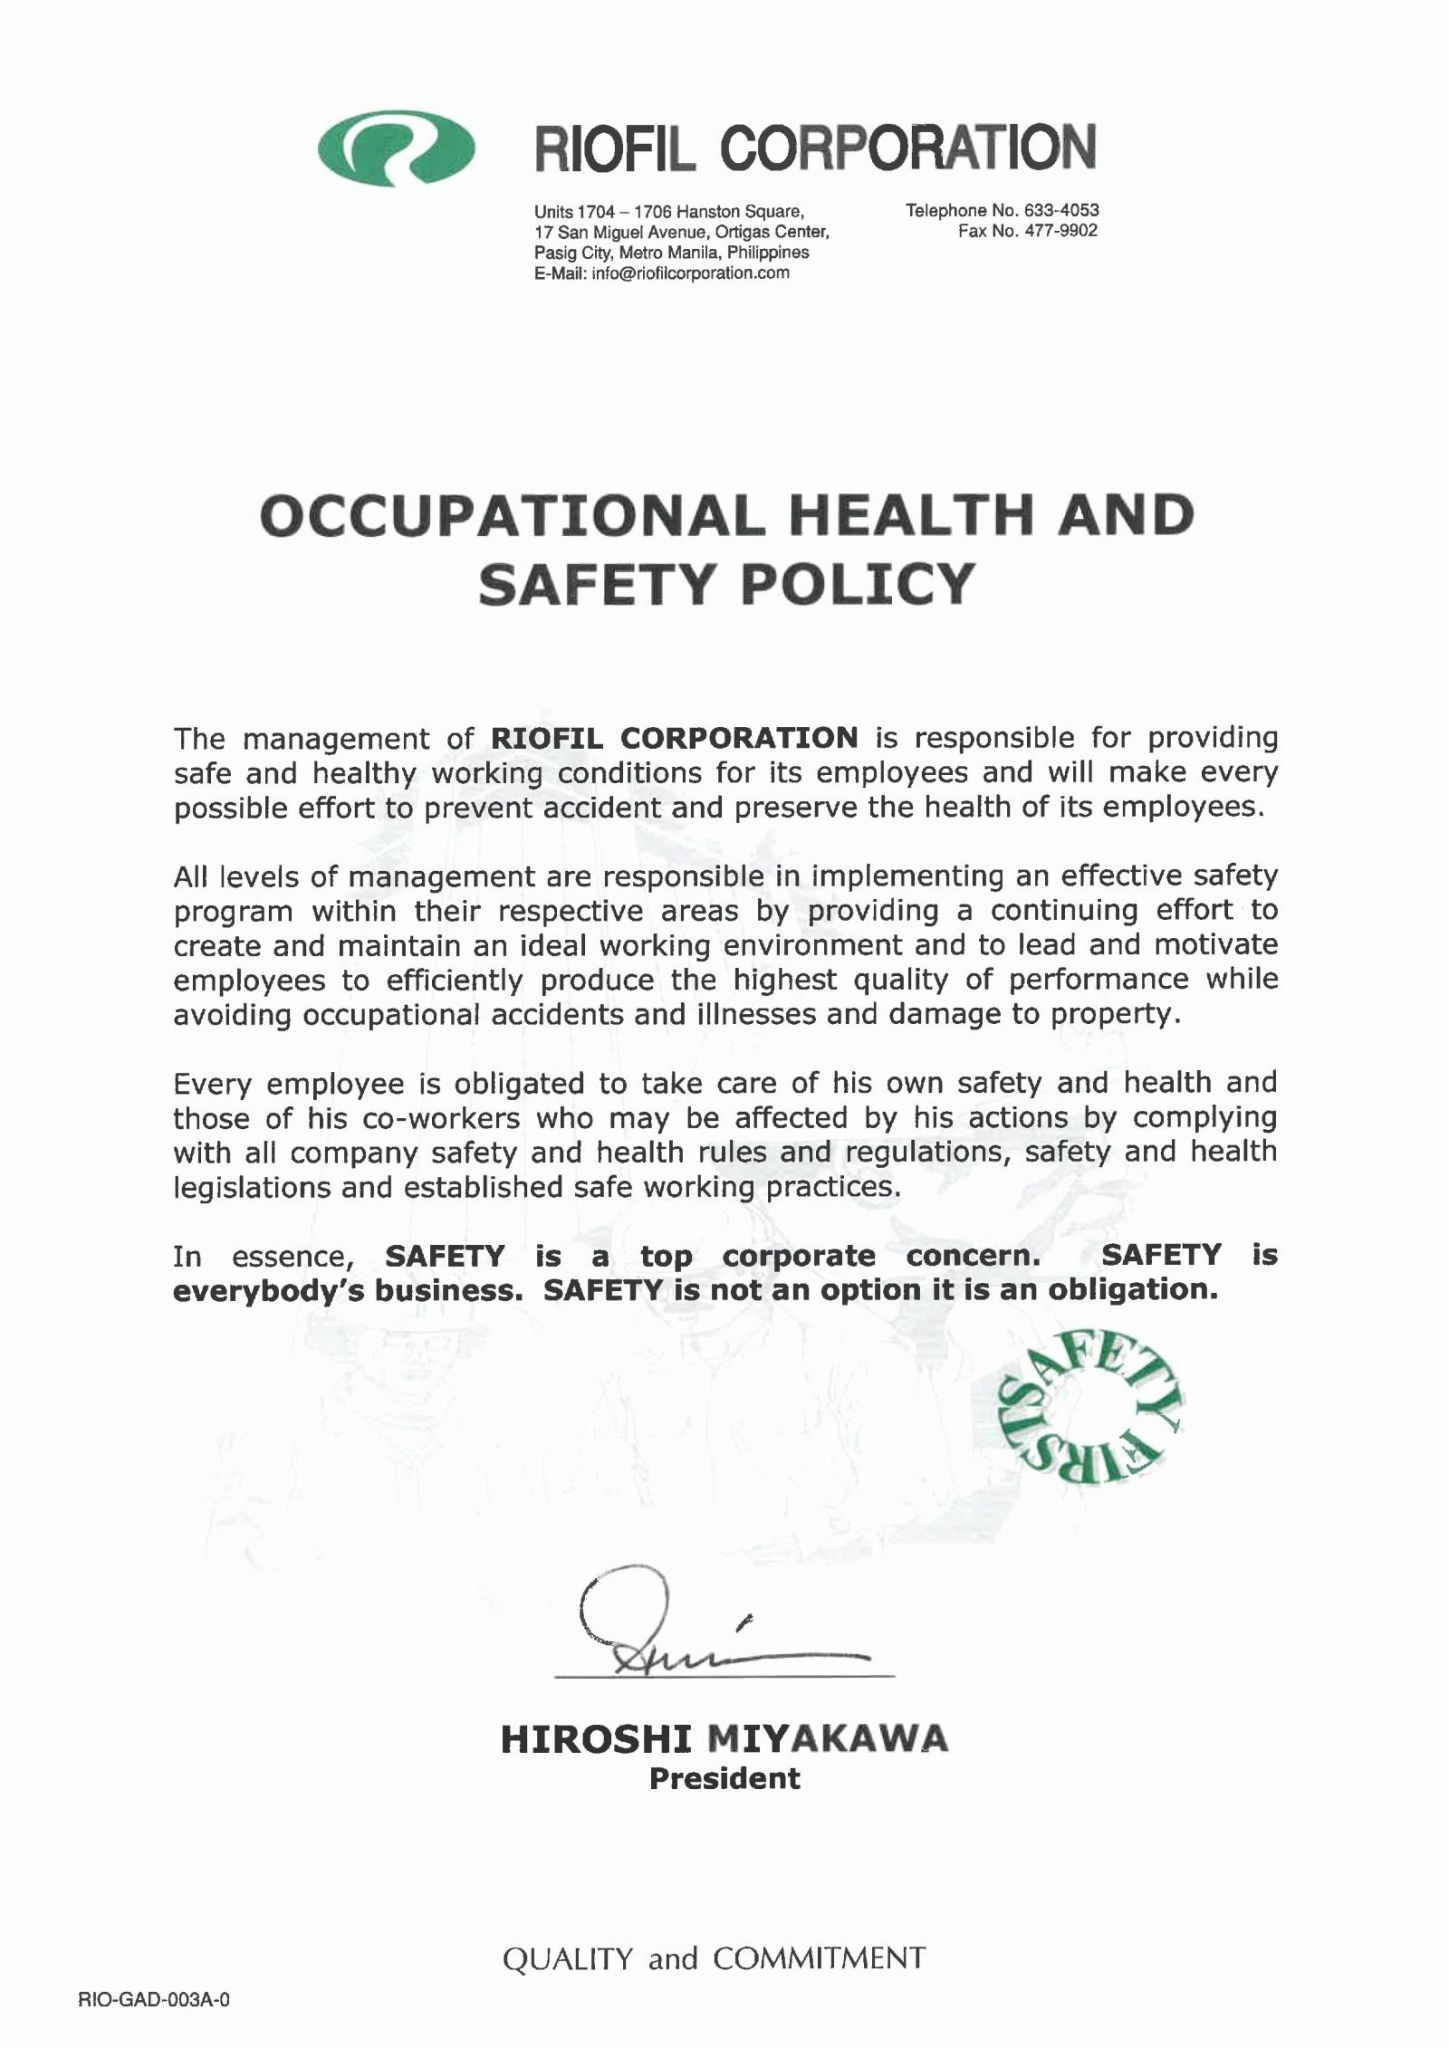 Safety Statement Sample Mission statement examples